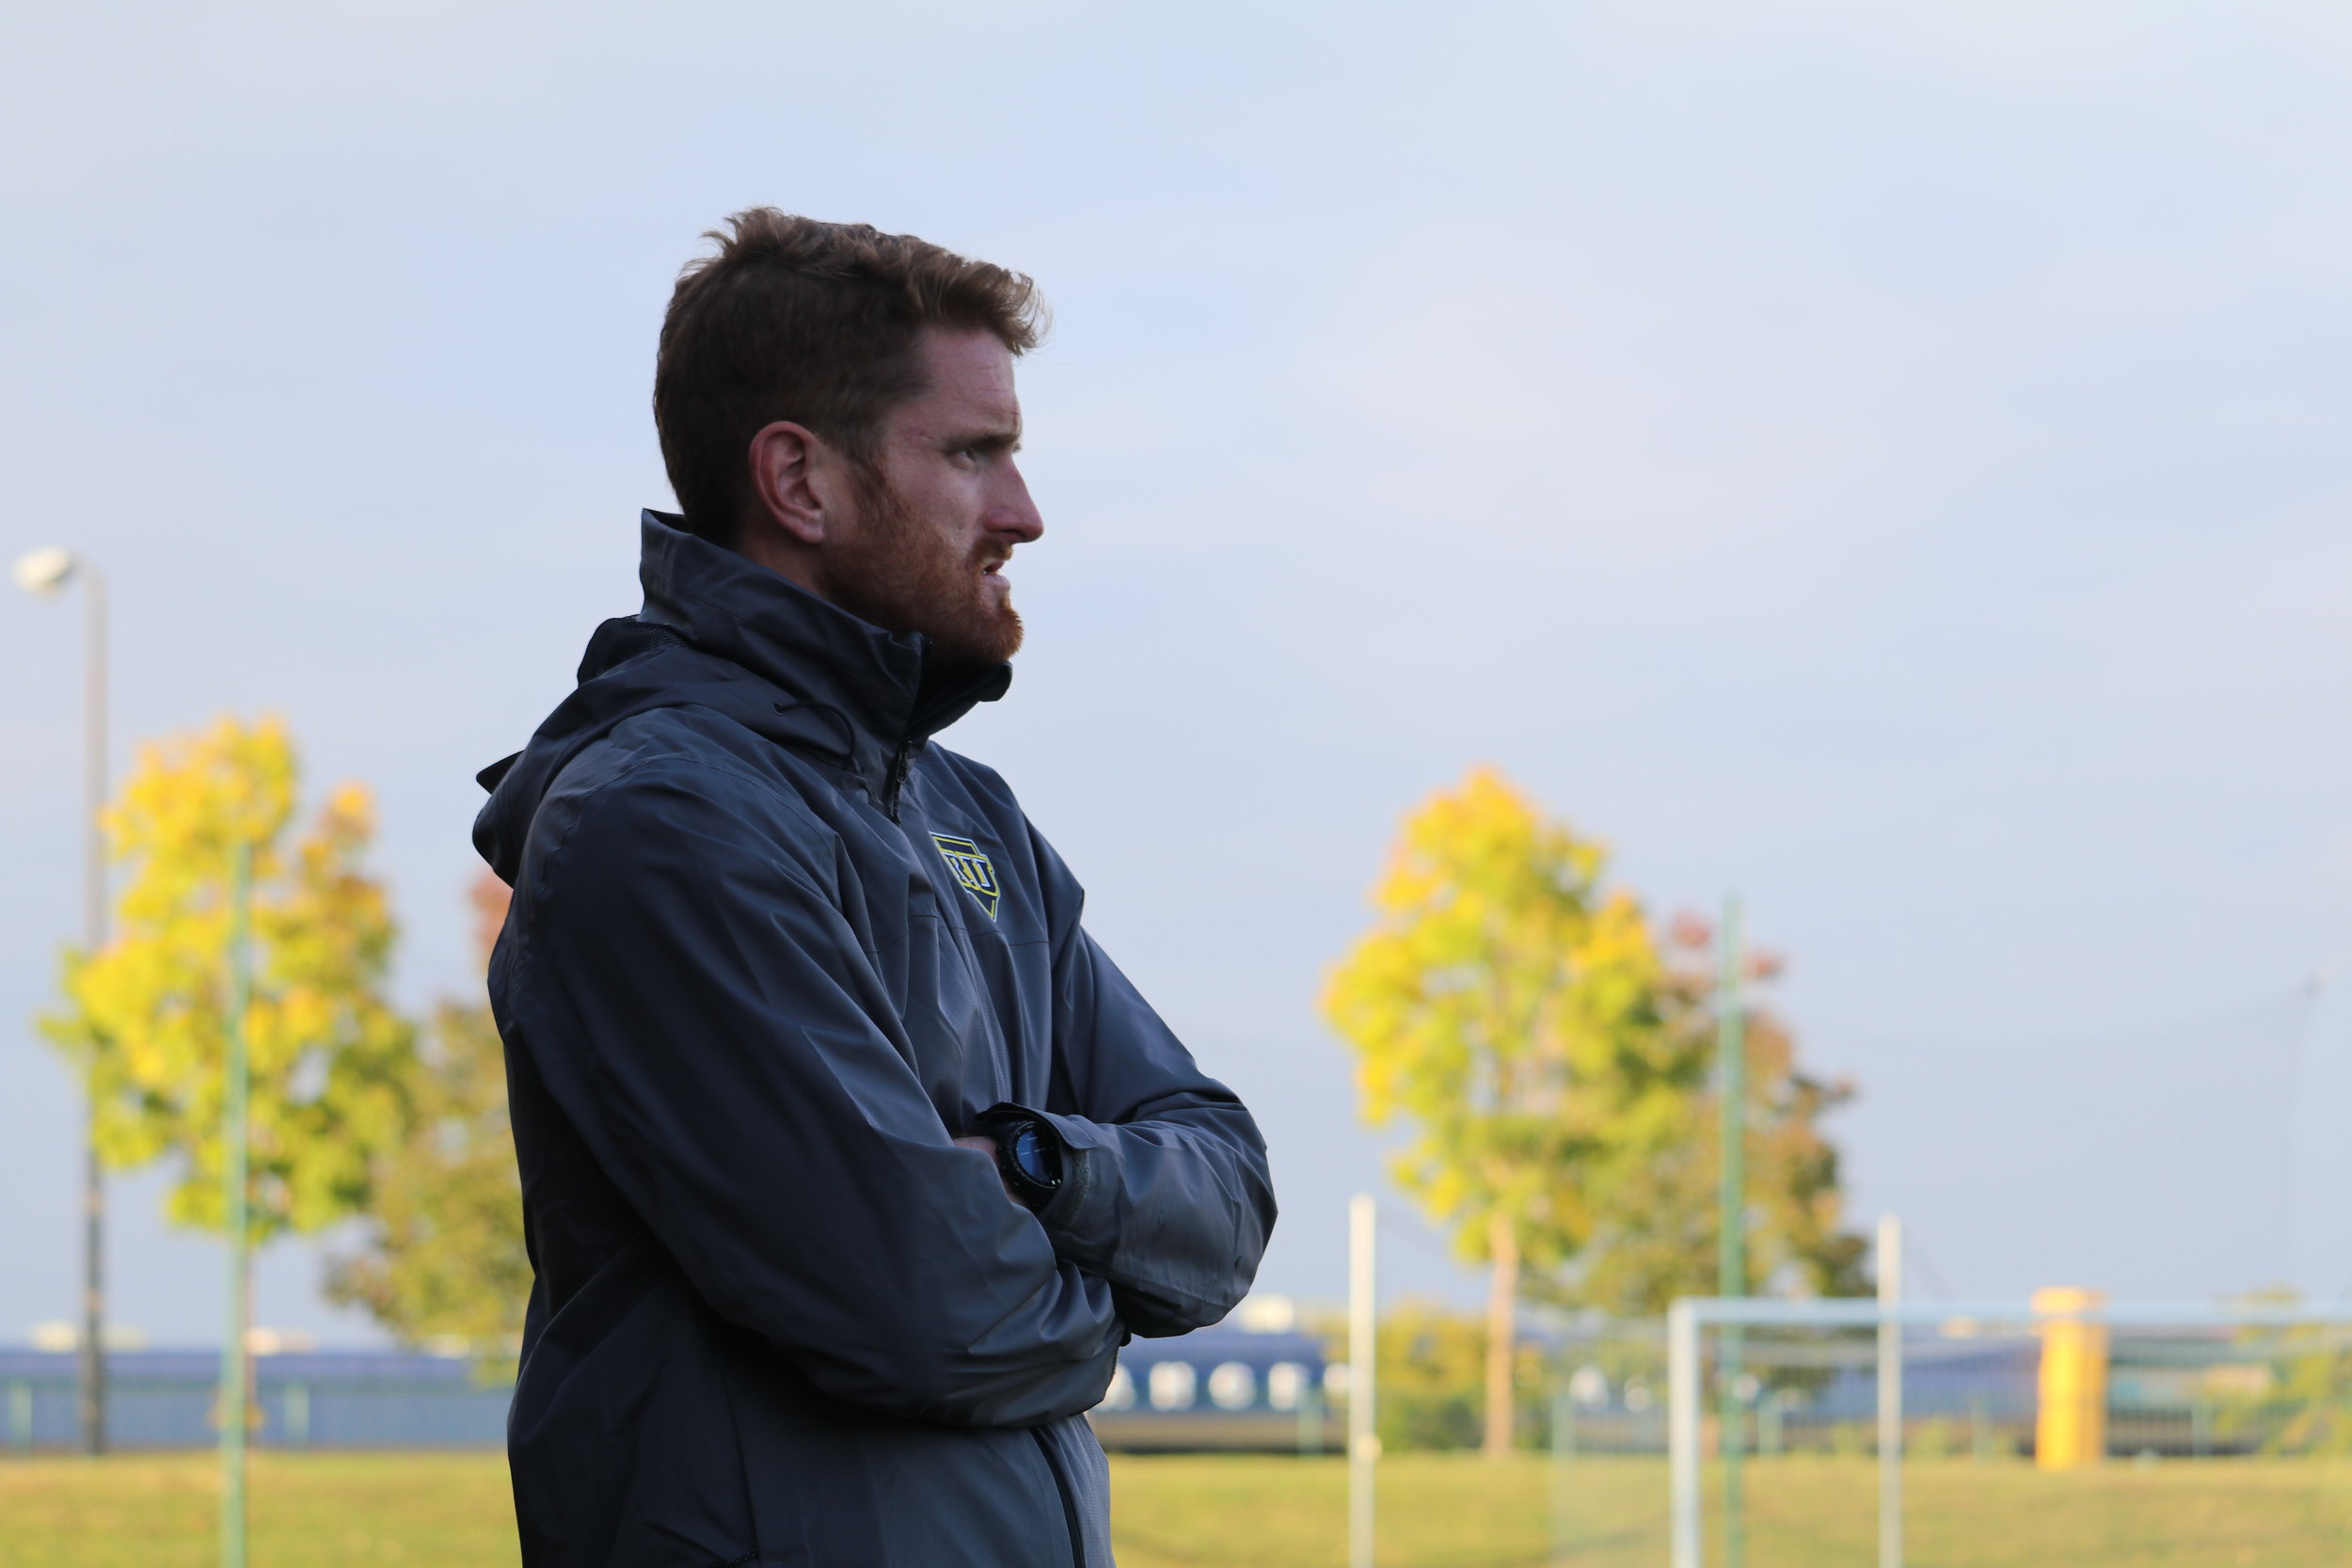 Taylor Diem    C0-Director/Men's Soccer Assistant Coach   Taylor Diem, a former Regis University men's soccer standout, returns to Regis in a coaching role after two seasons as an assistant coach at Johnson and Wales. Diem enters into his first season as an assistant coach under head coach Tony McCall in 2018. As an assistant coach at JWU, Diem spent two seasons with the Wildcats, guiding the team to its first Association of Independent Institutions (AII) Conference Tournament appearance in 2015. Originally from Madison, Wisconsin, Diem is 2013 graduate of Regis University where he played three seasons with the Rangers. At Regis, Diem was named to the Daktronics All-America First Team and the NSCAA All-America Second Team as well as being named RMAC Defensive Player of the Year and All-RMAC First Team in his senior season. Diem was one of the most decorated Rangers during his junior season when he was selected NSCAA All-Central Region Second Team, Daktronics All-Central Region First Team and All-RMAC Second Team.